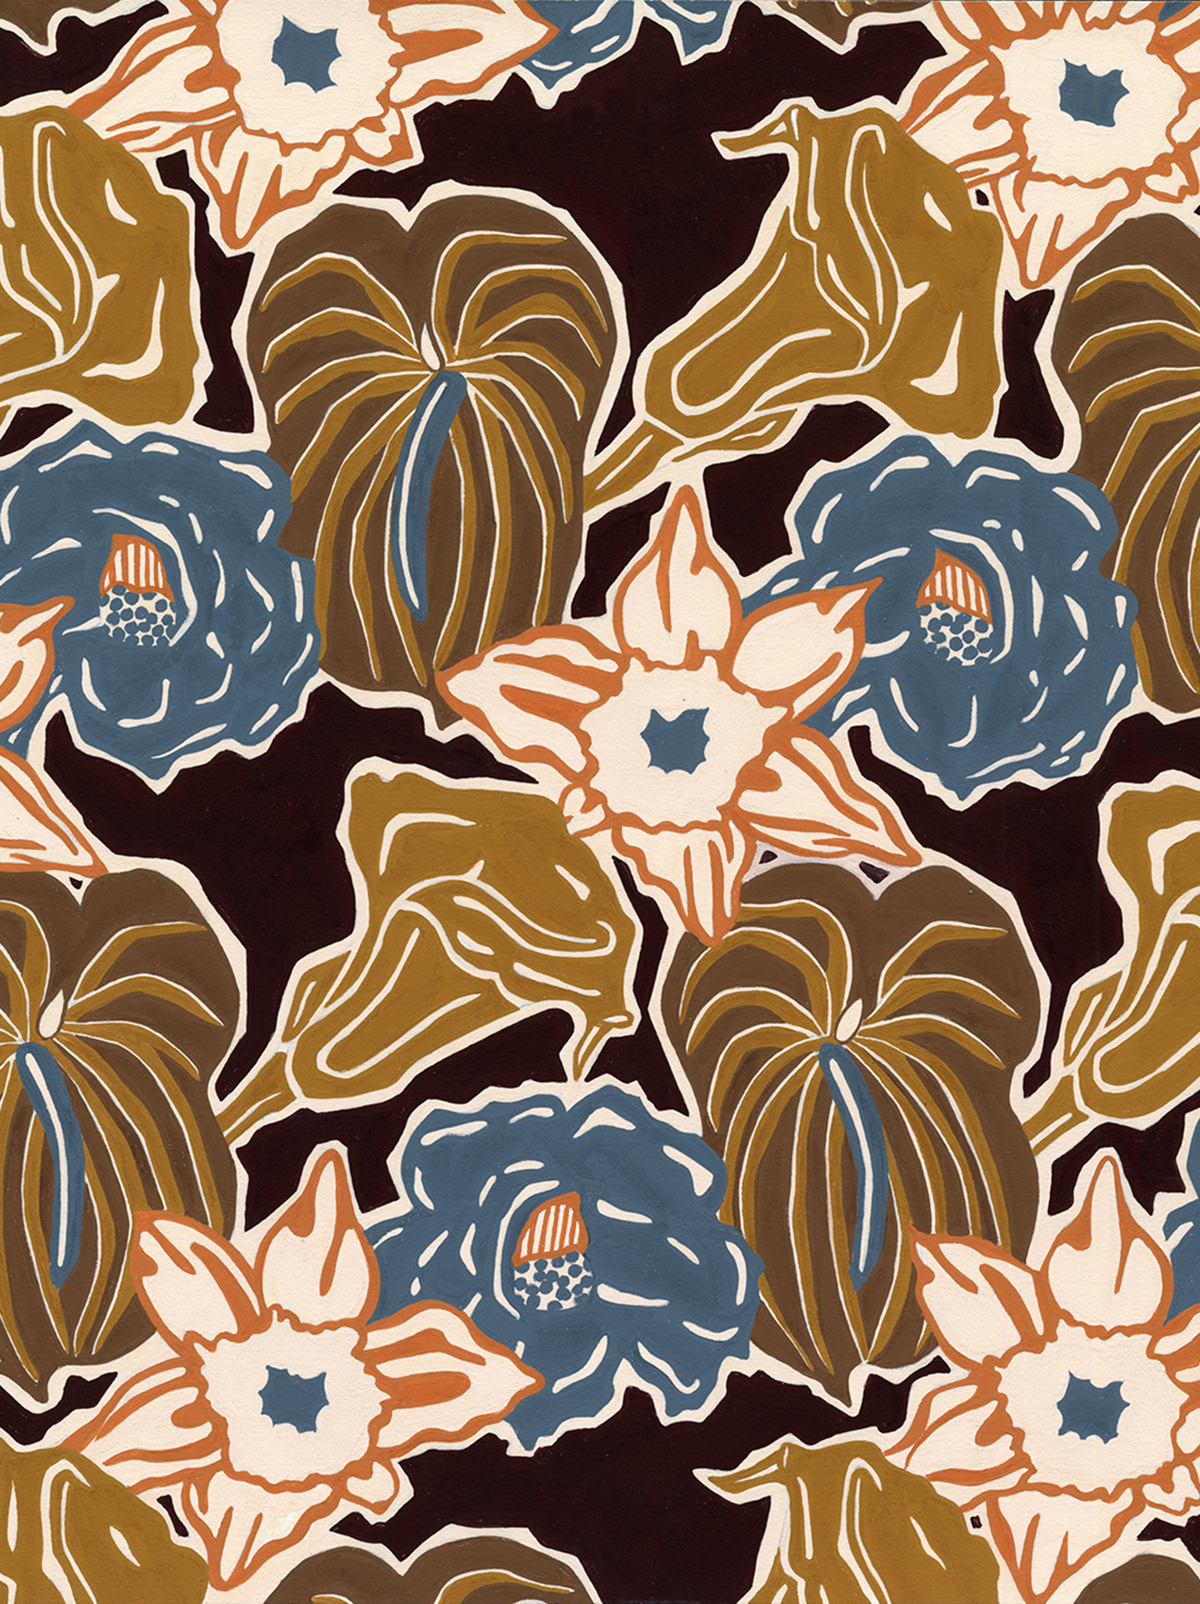 Woodcut Floral warm #118